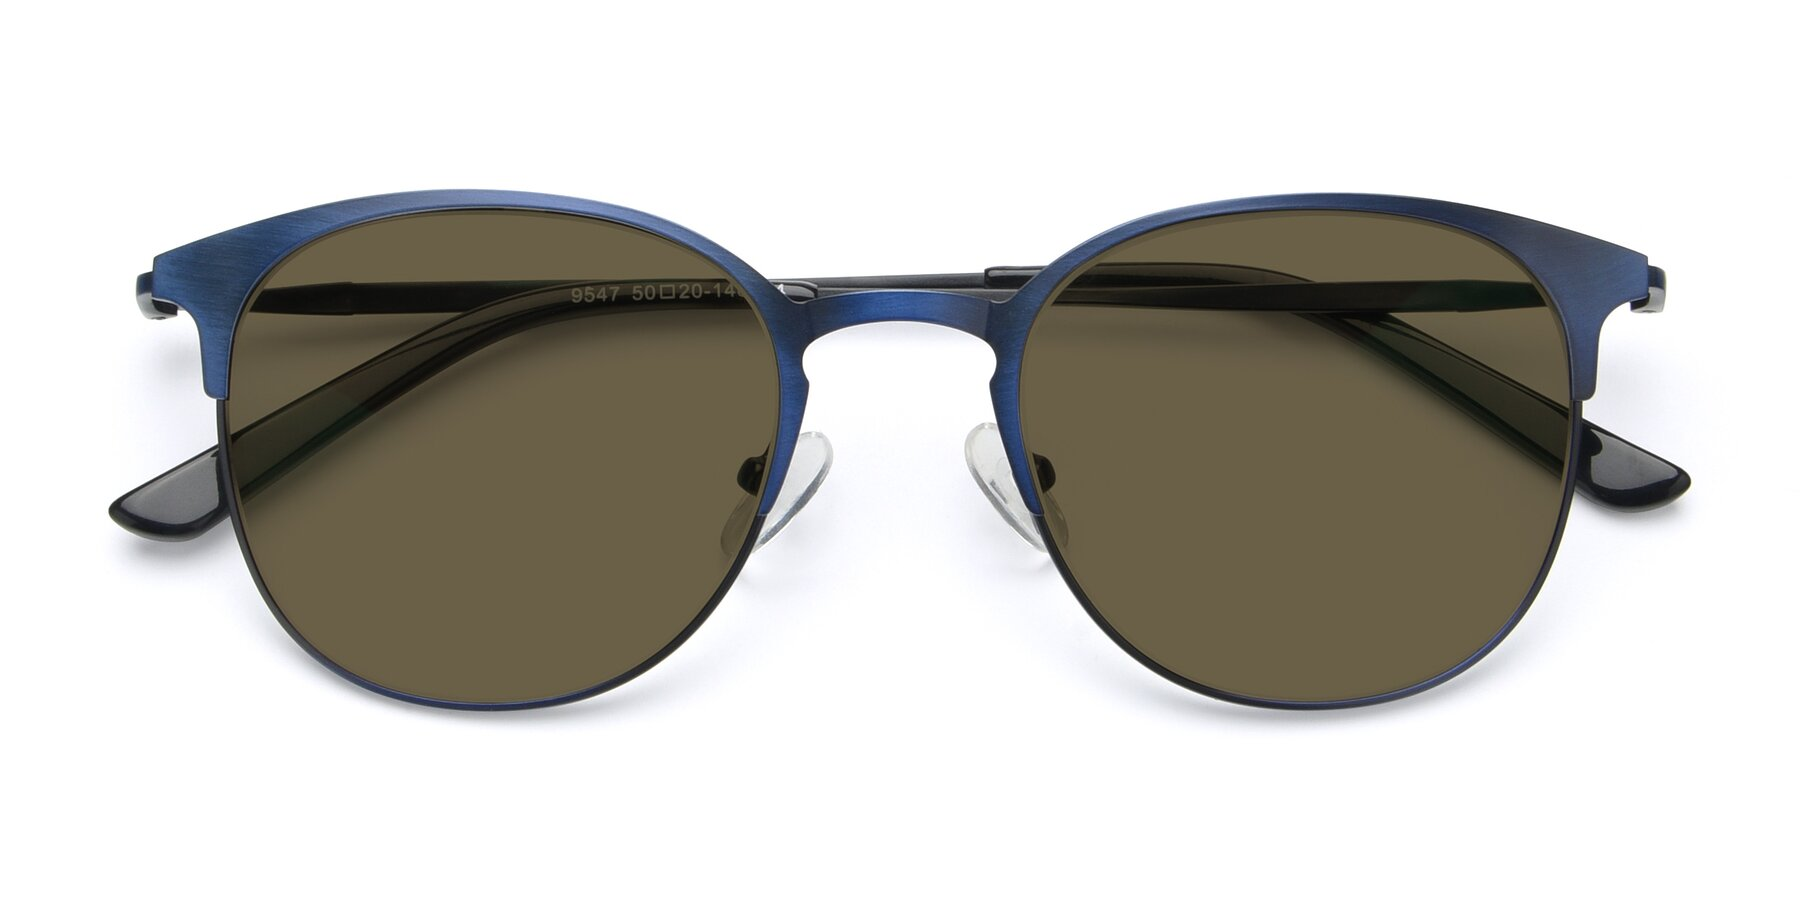 Folded Front of 9547 in Antique Blue with Brown Polarized Lenses